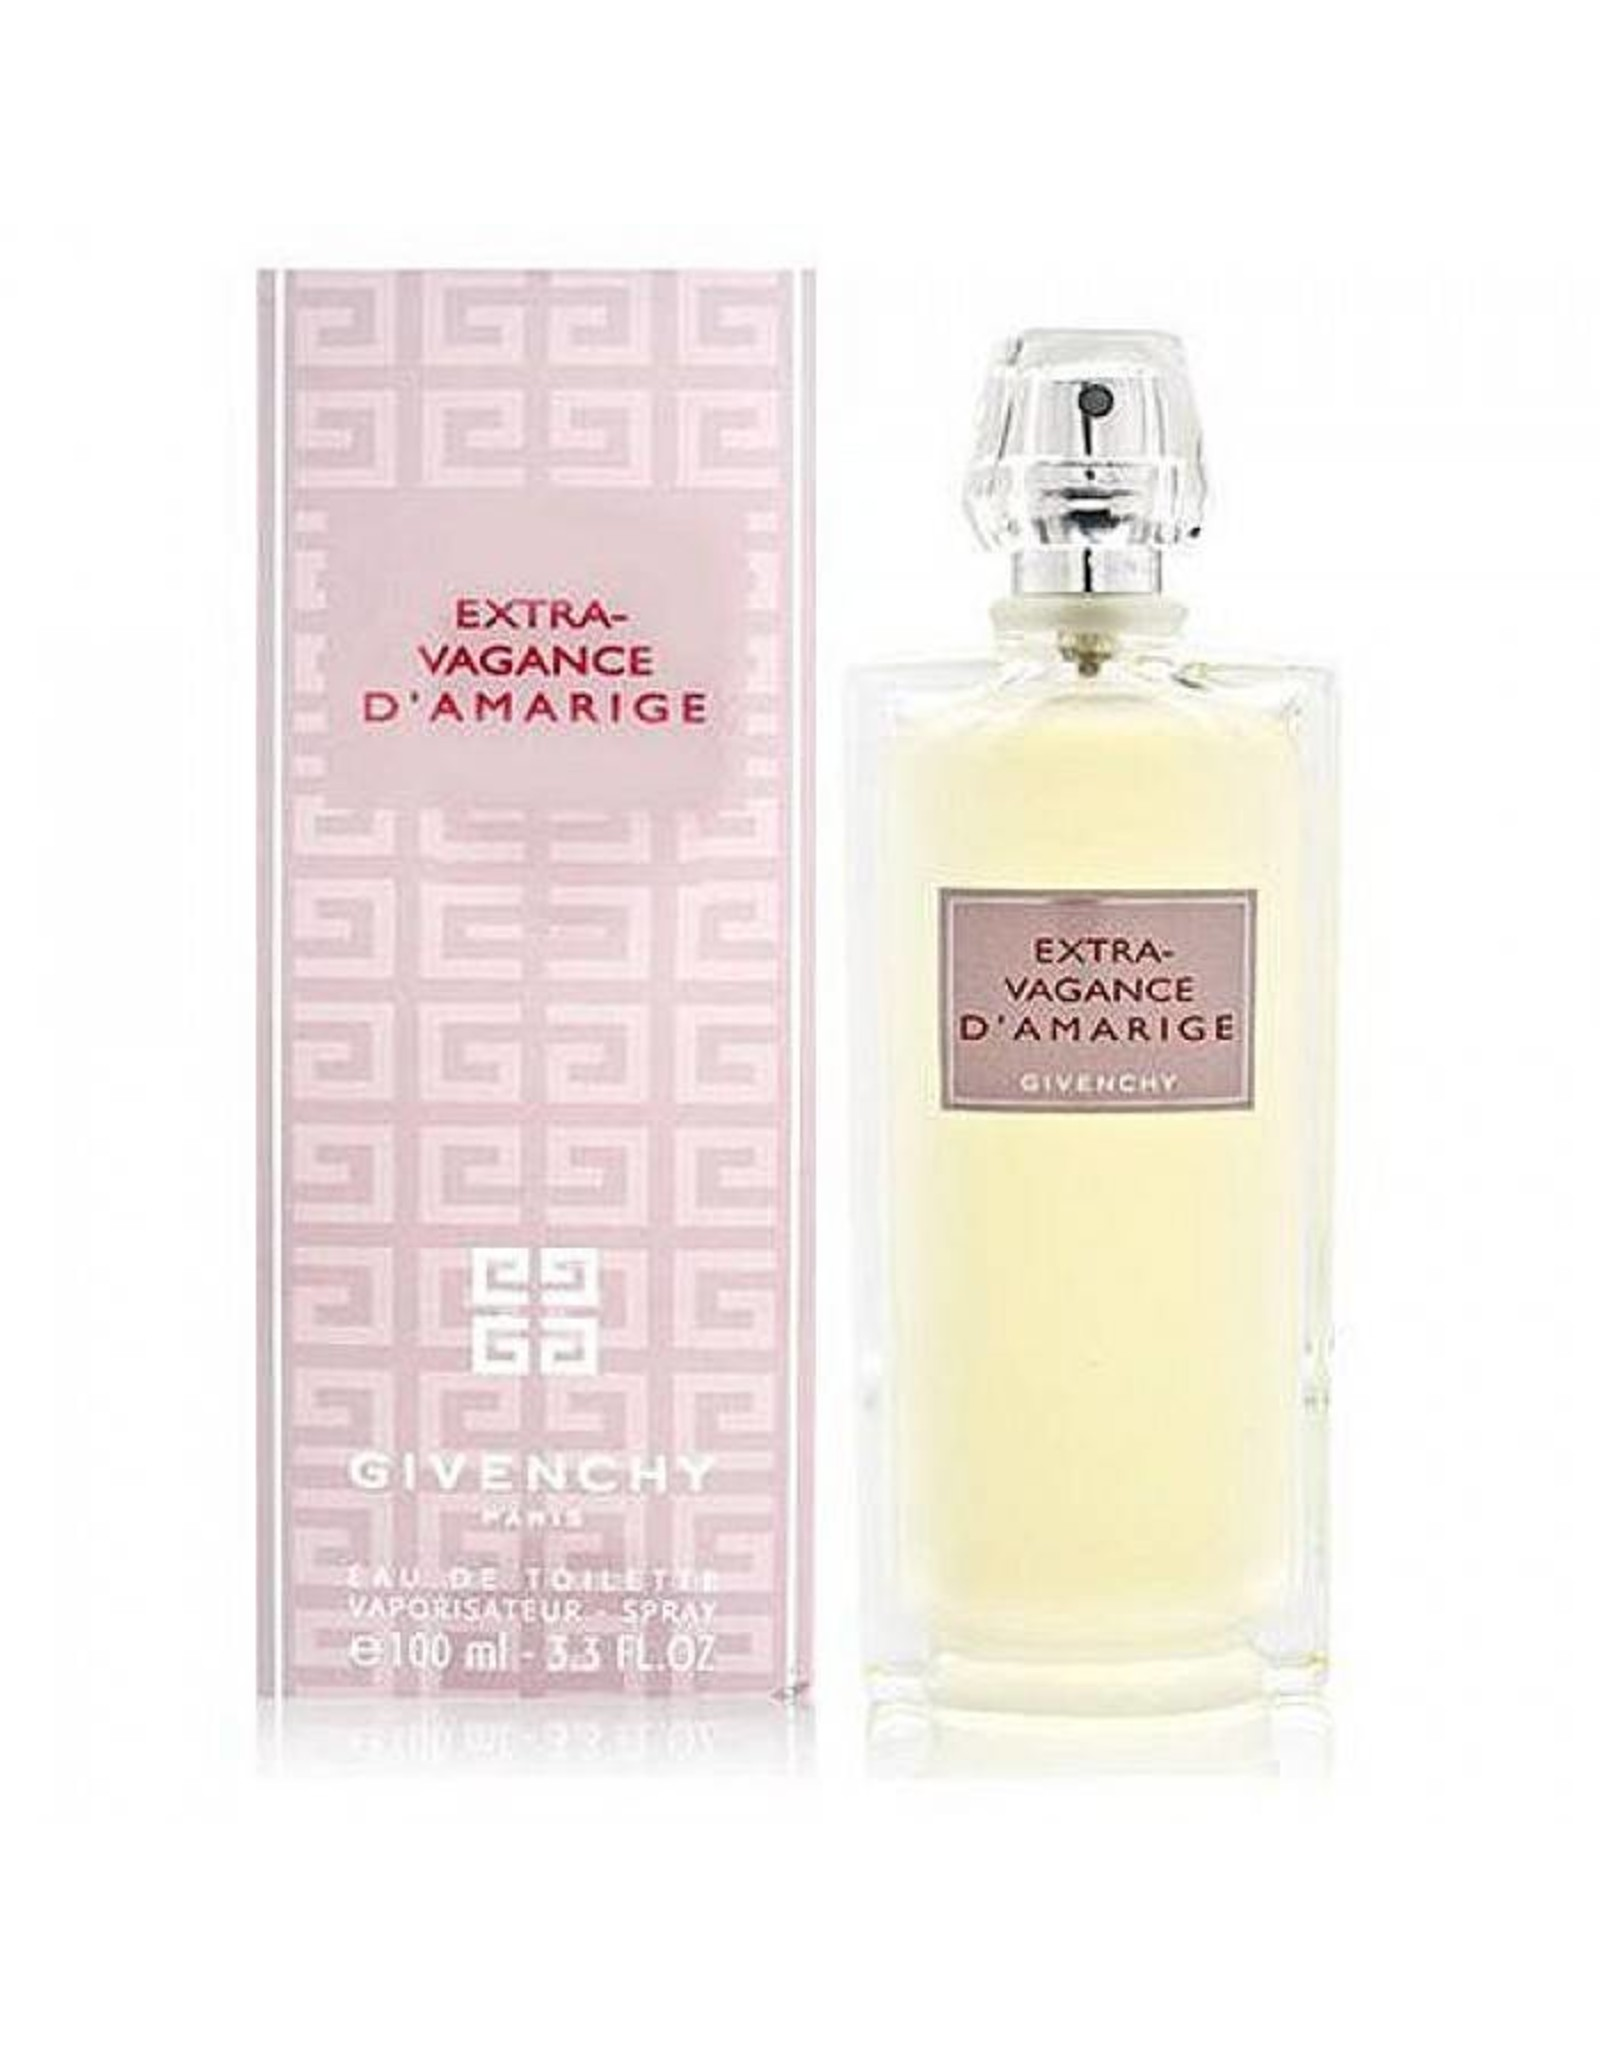 GIVENCHY GIVENCHY EXTRA-VAGANCE D'AMARIGE